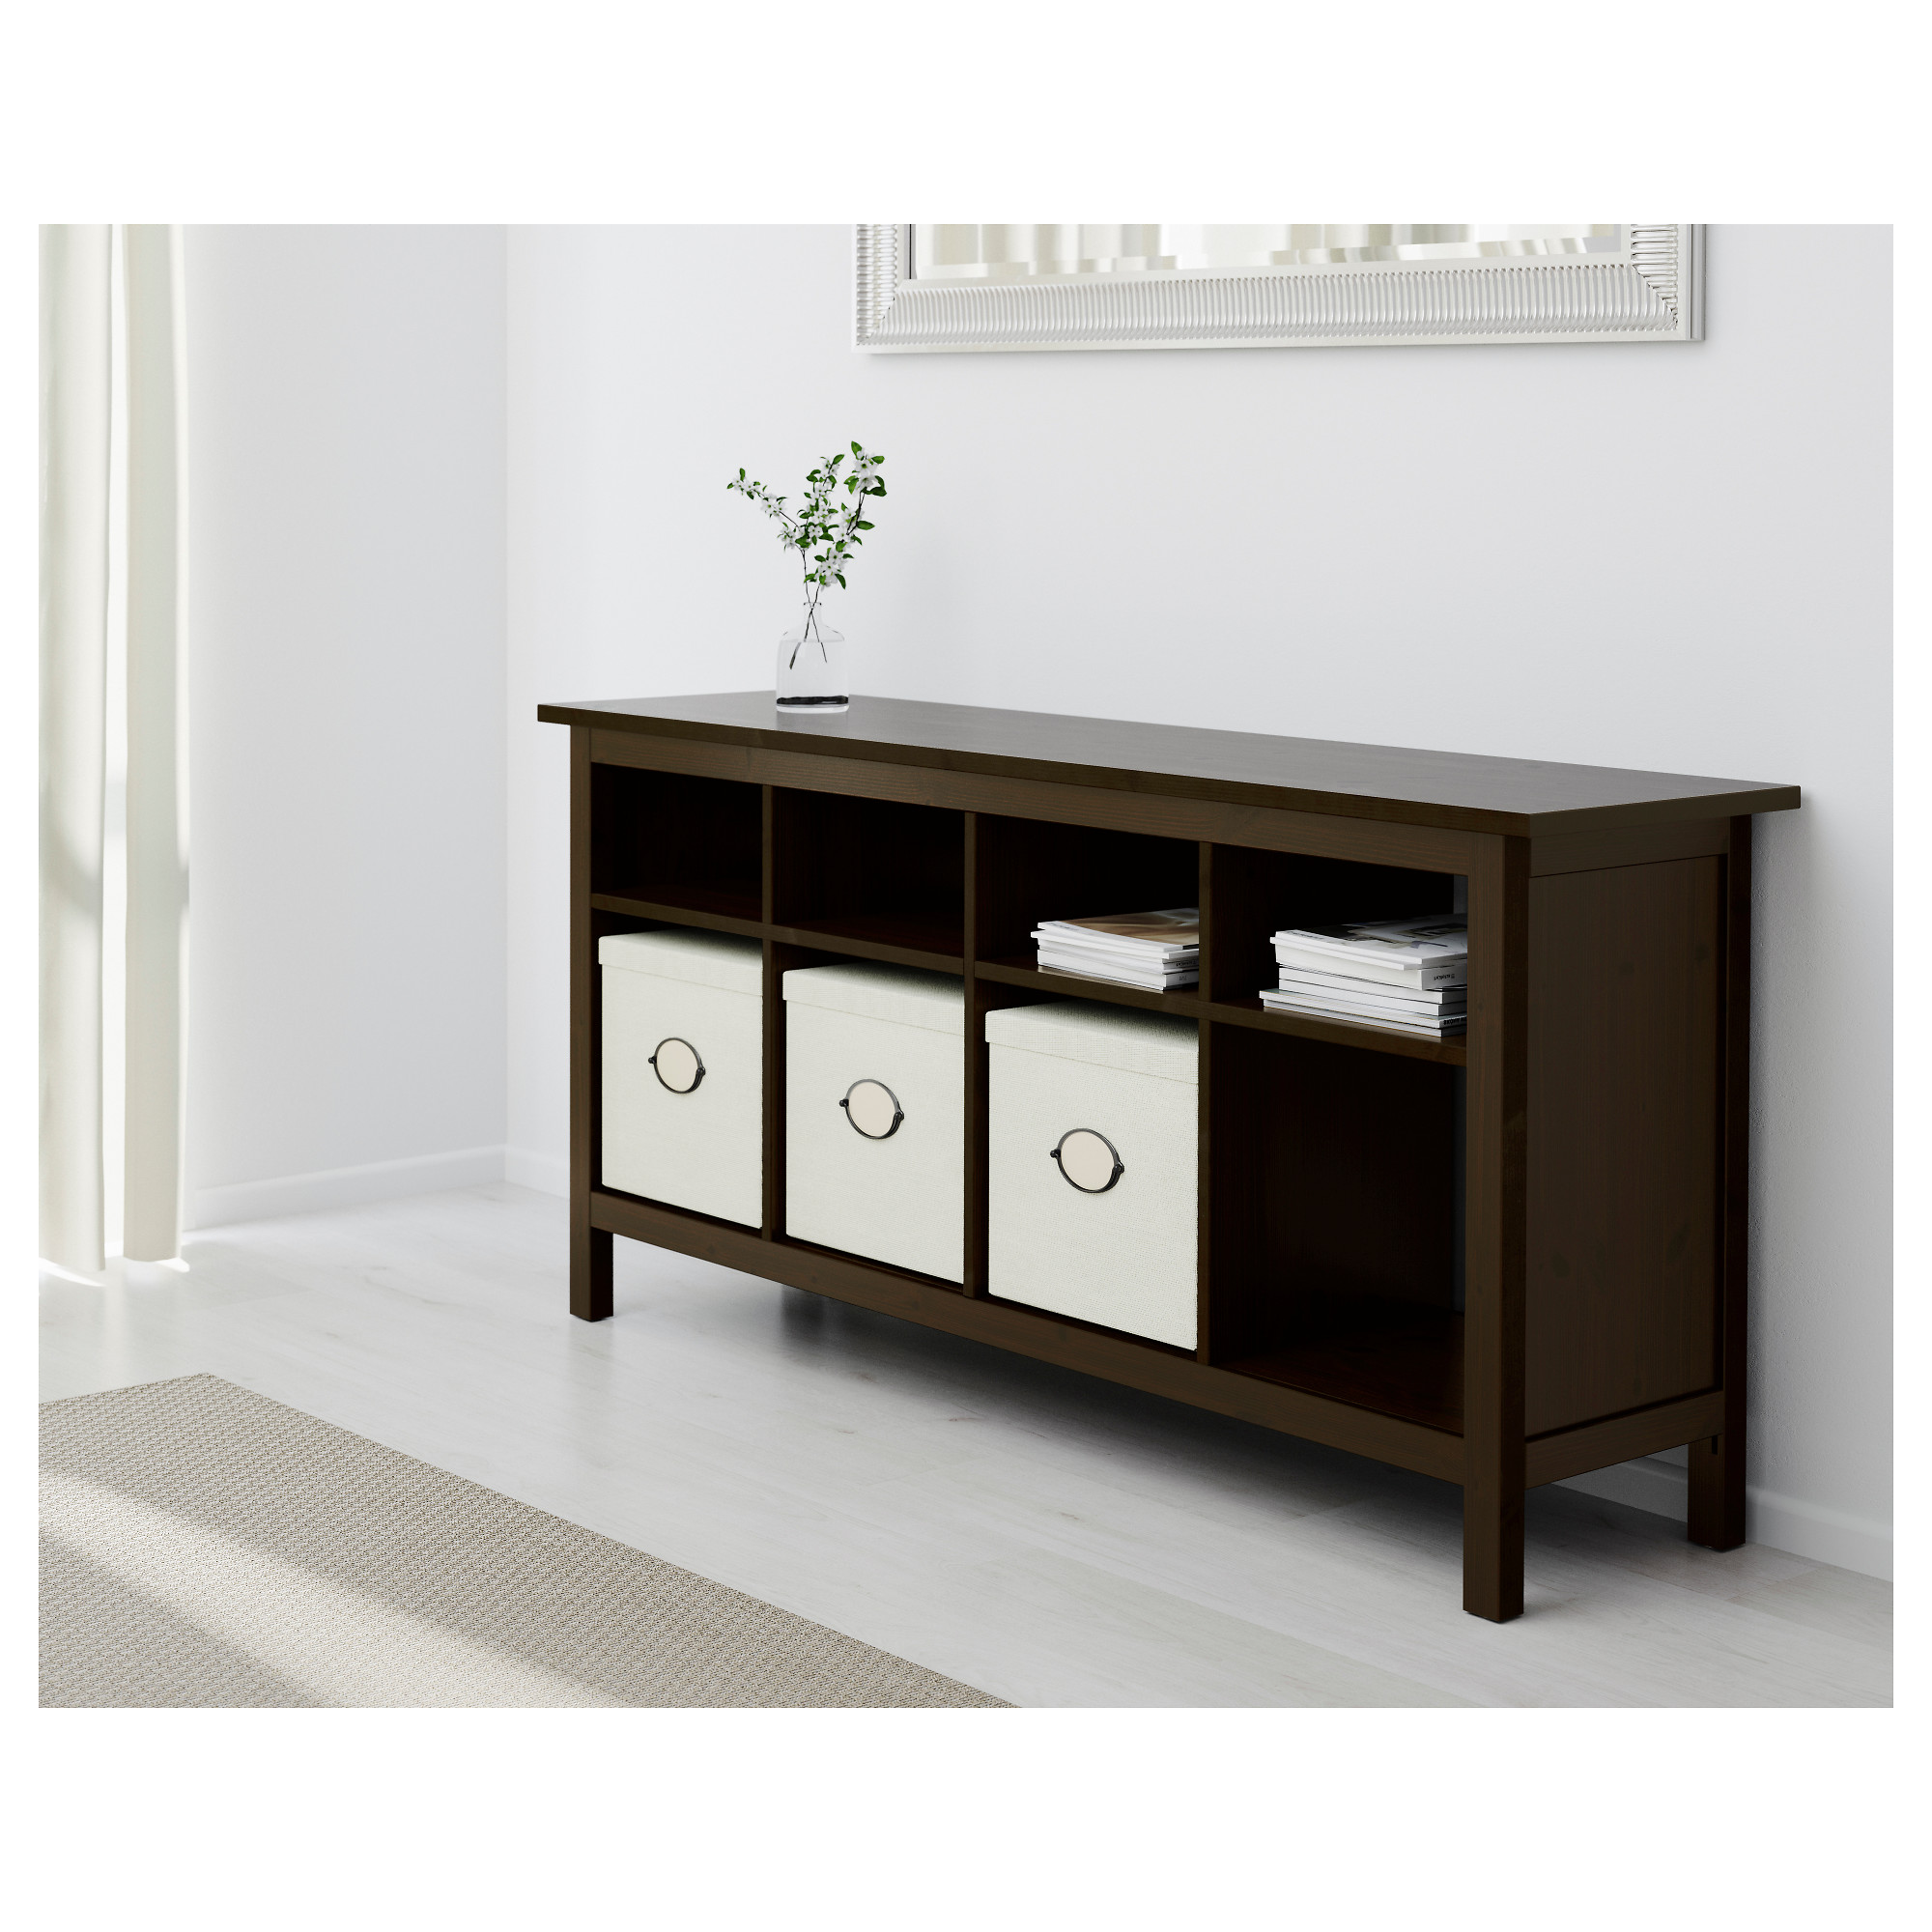 sofa table hemnes console table - black-brown - ikea ERBFCVC